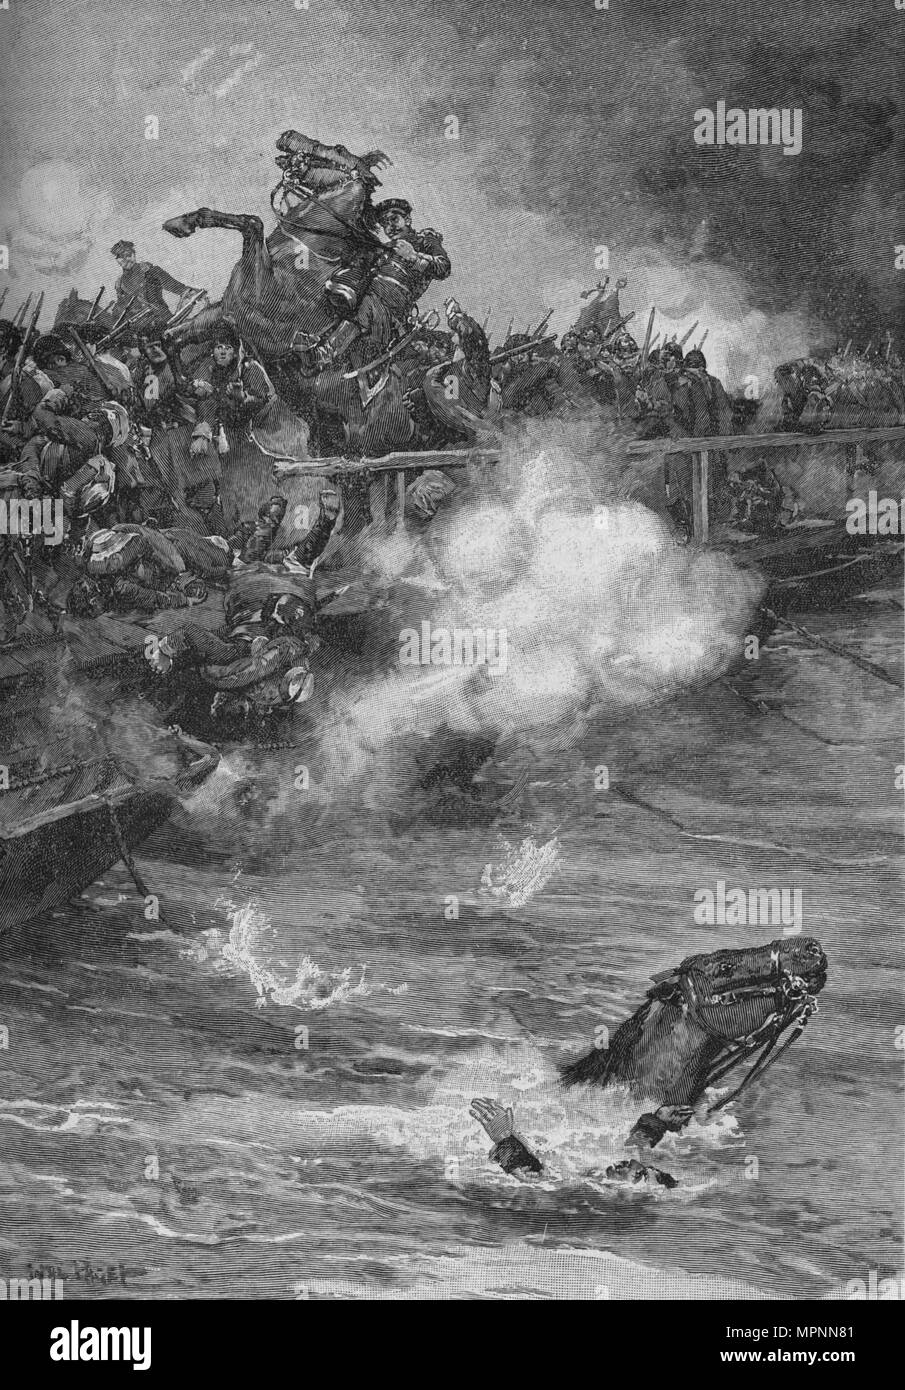 'A Terrible Carnage Ensued Upon The Overcrowded Bridge', 1902. Artist: Walter Paget. Stock Photo